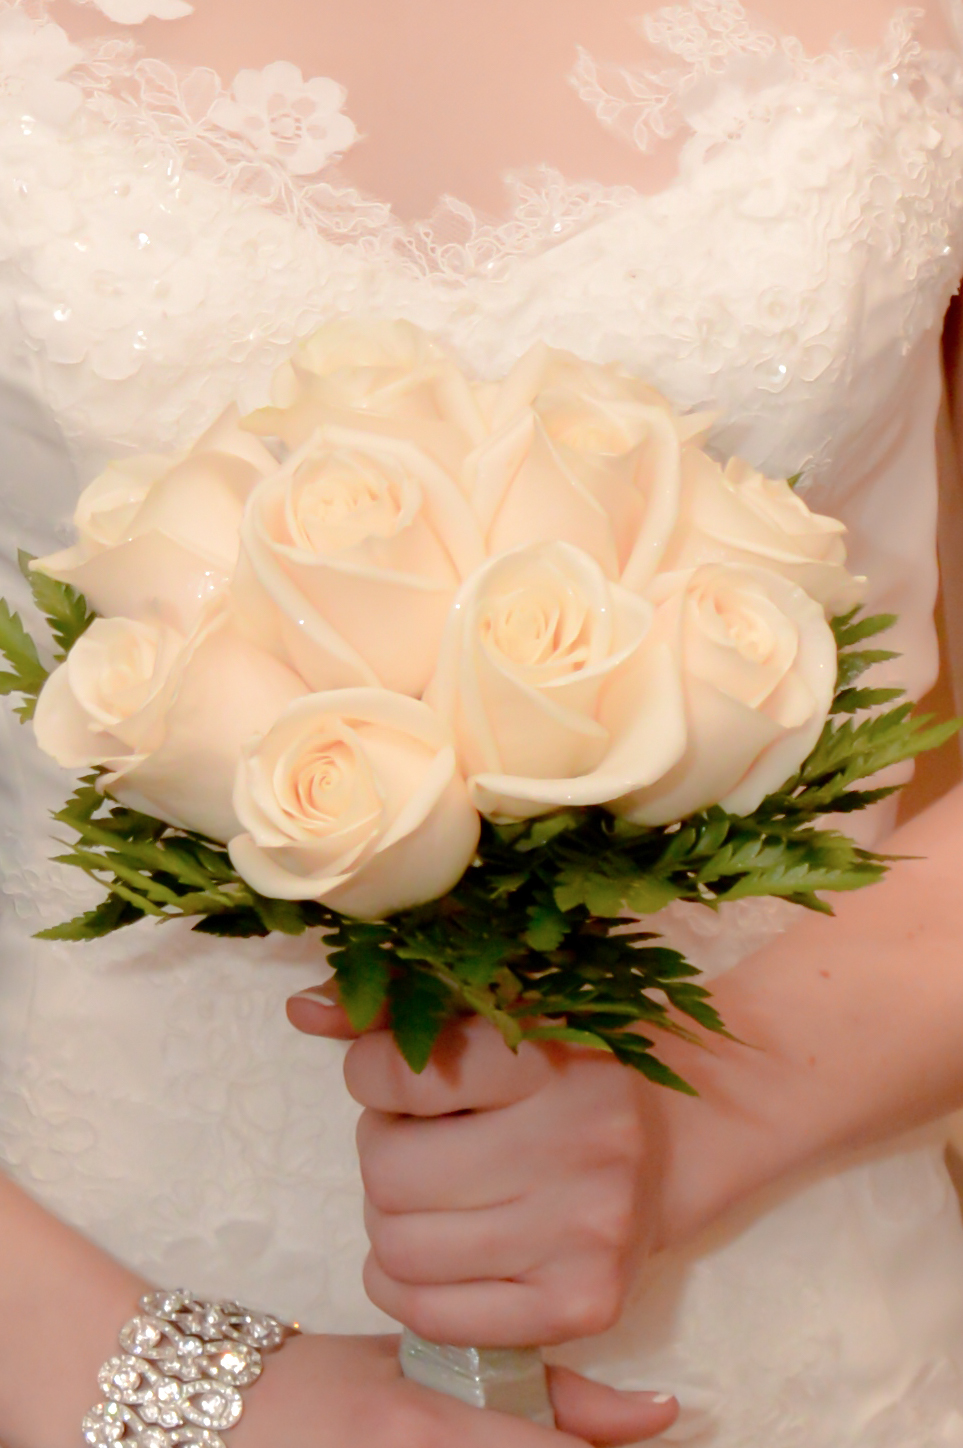 Twelve Rose Hand Tied Bouquets Las Vegas Weddings